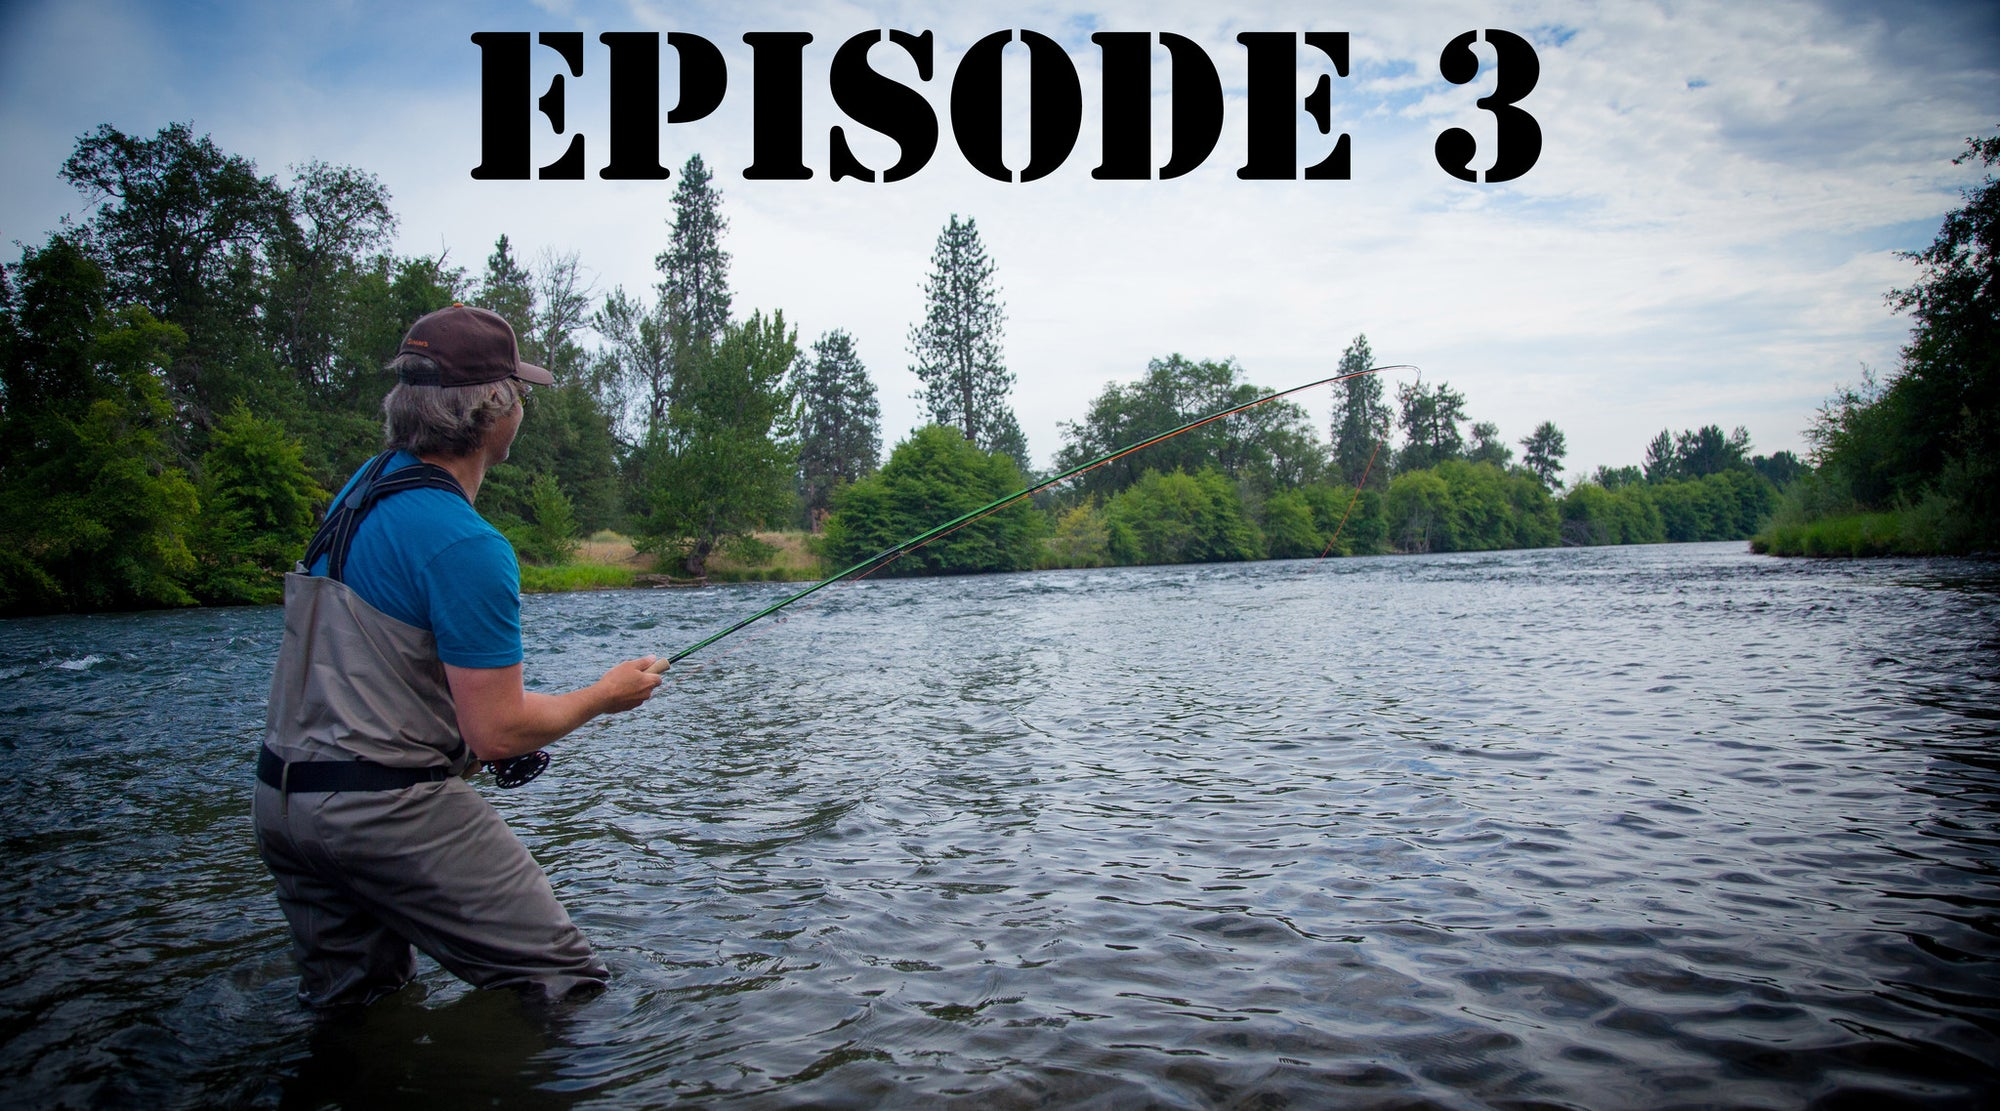 Spey Fishing with Jon, Episode 3